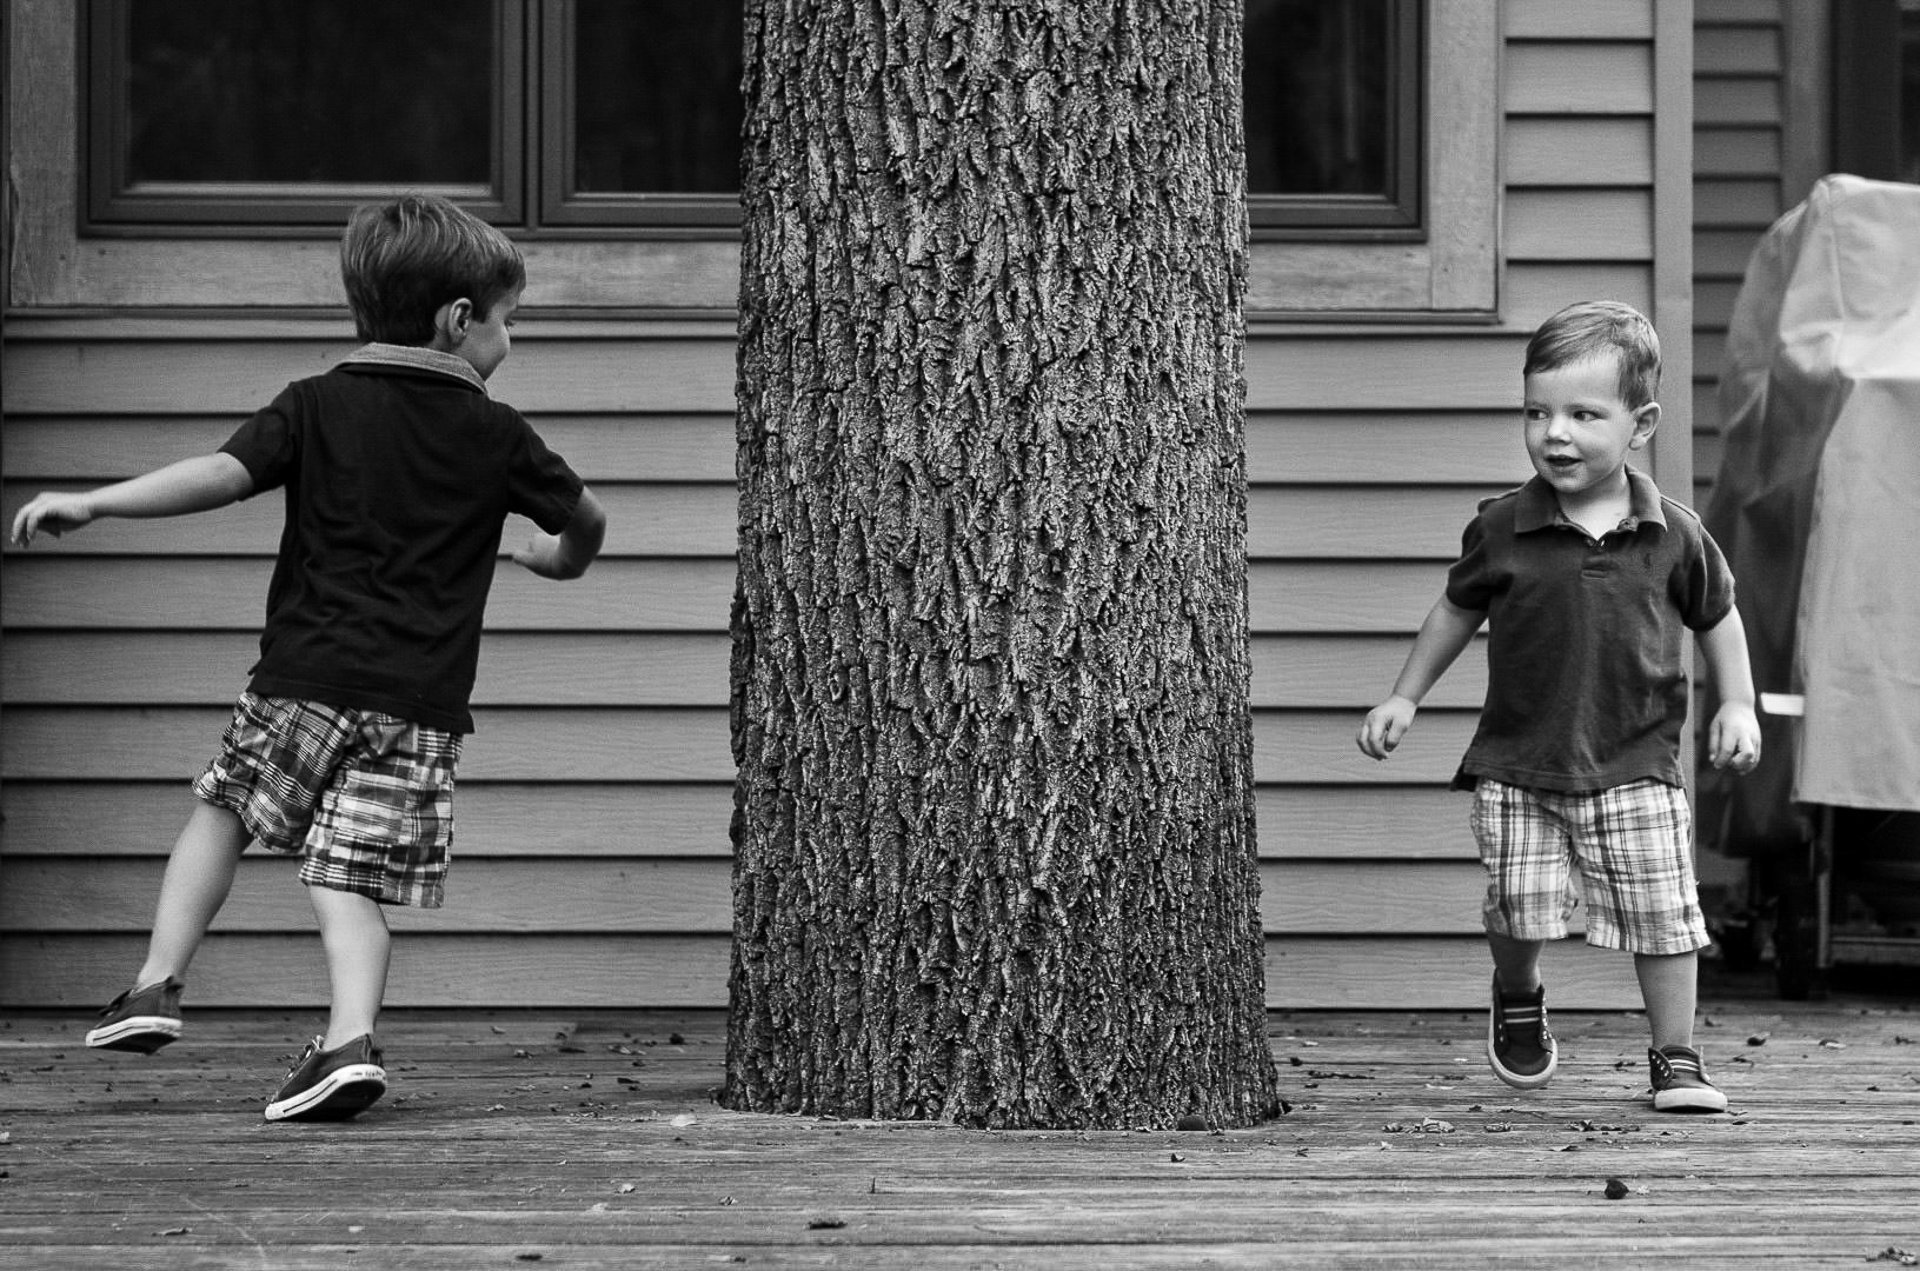 Siblings running after each other